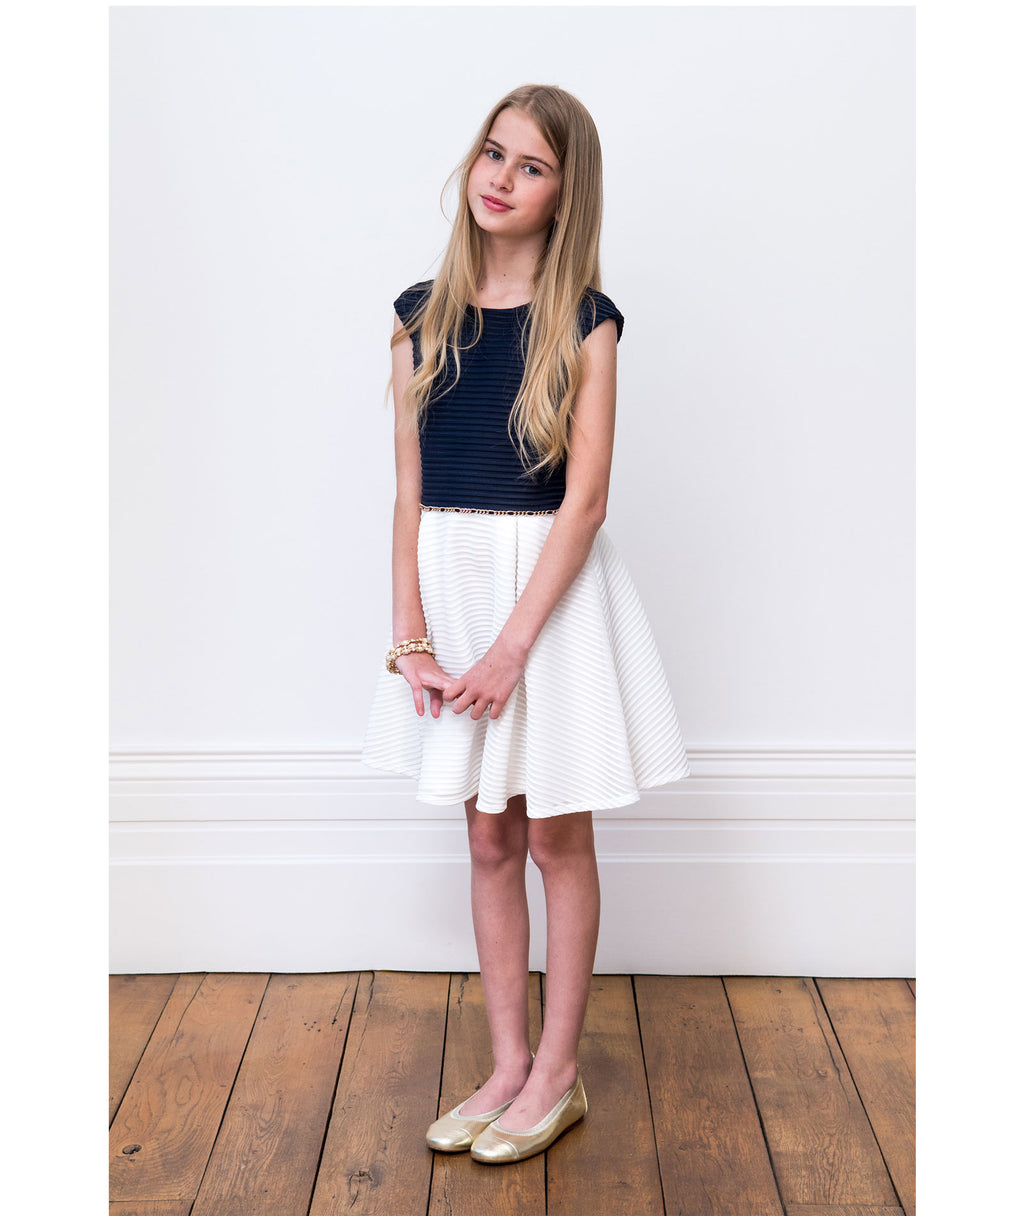 David Charles Girls Navy & Ivory Dress